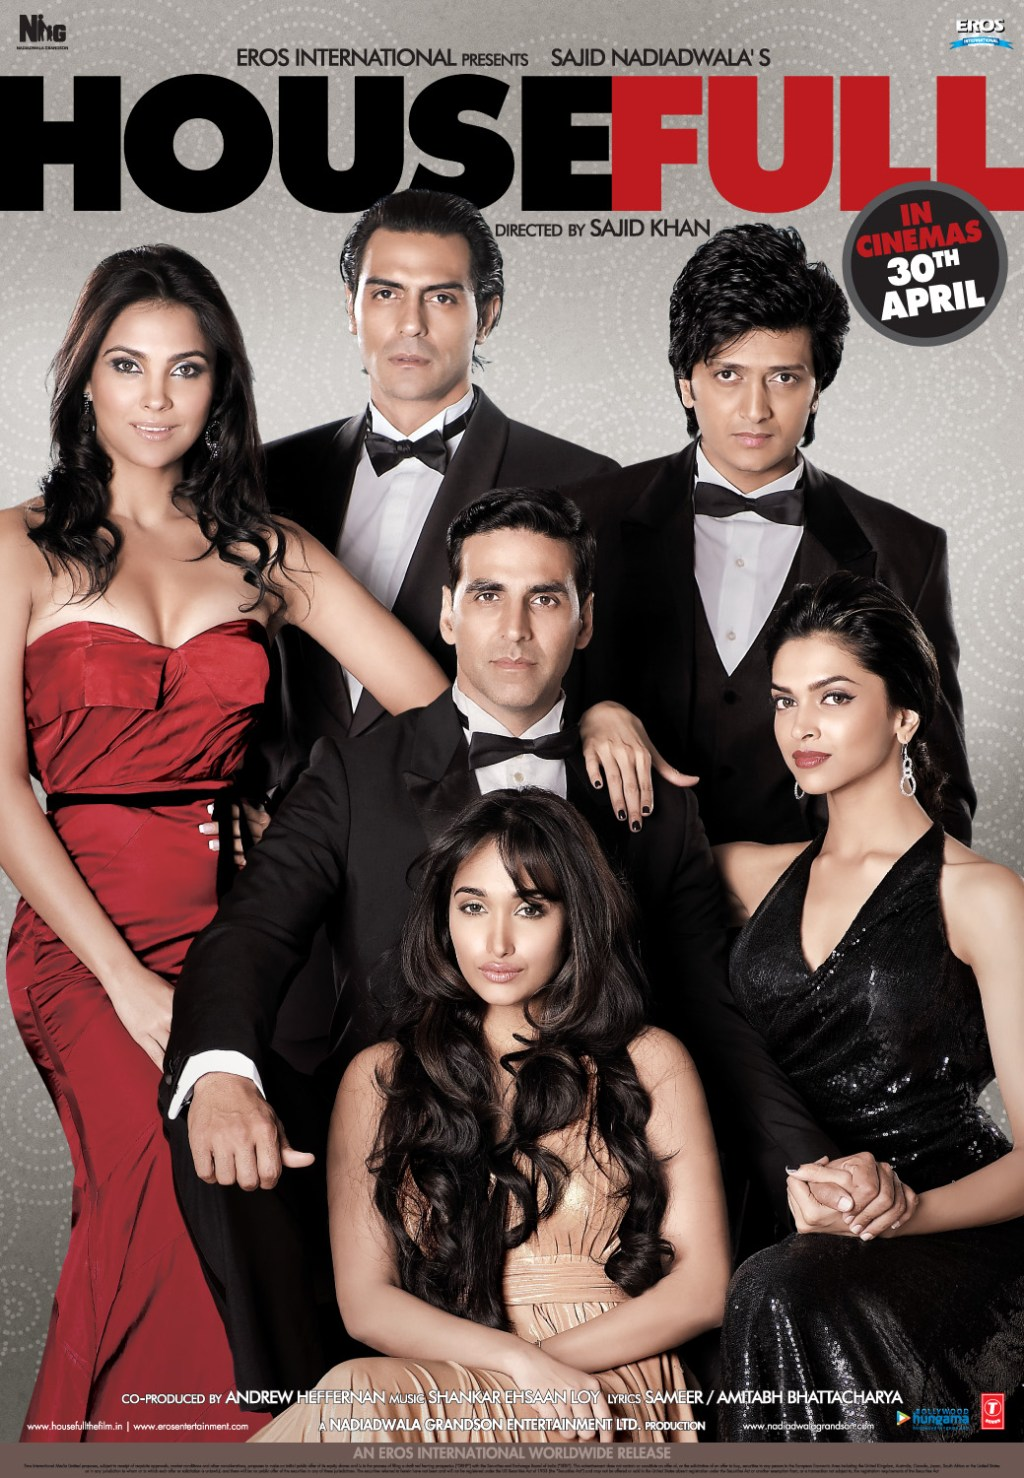 Housefull Movie Poster- Full HD